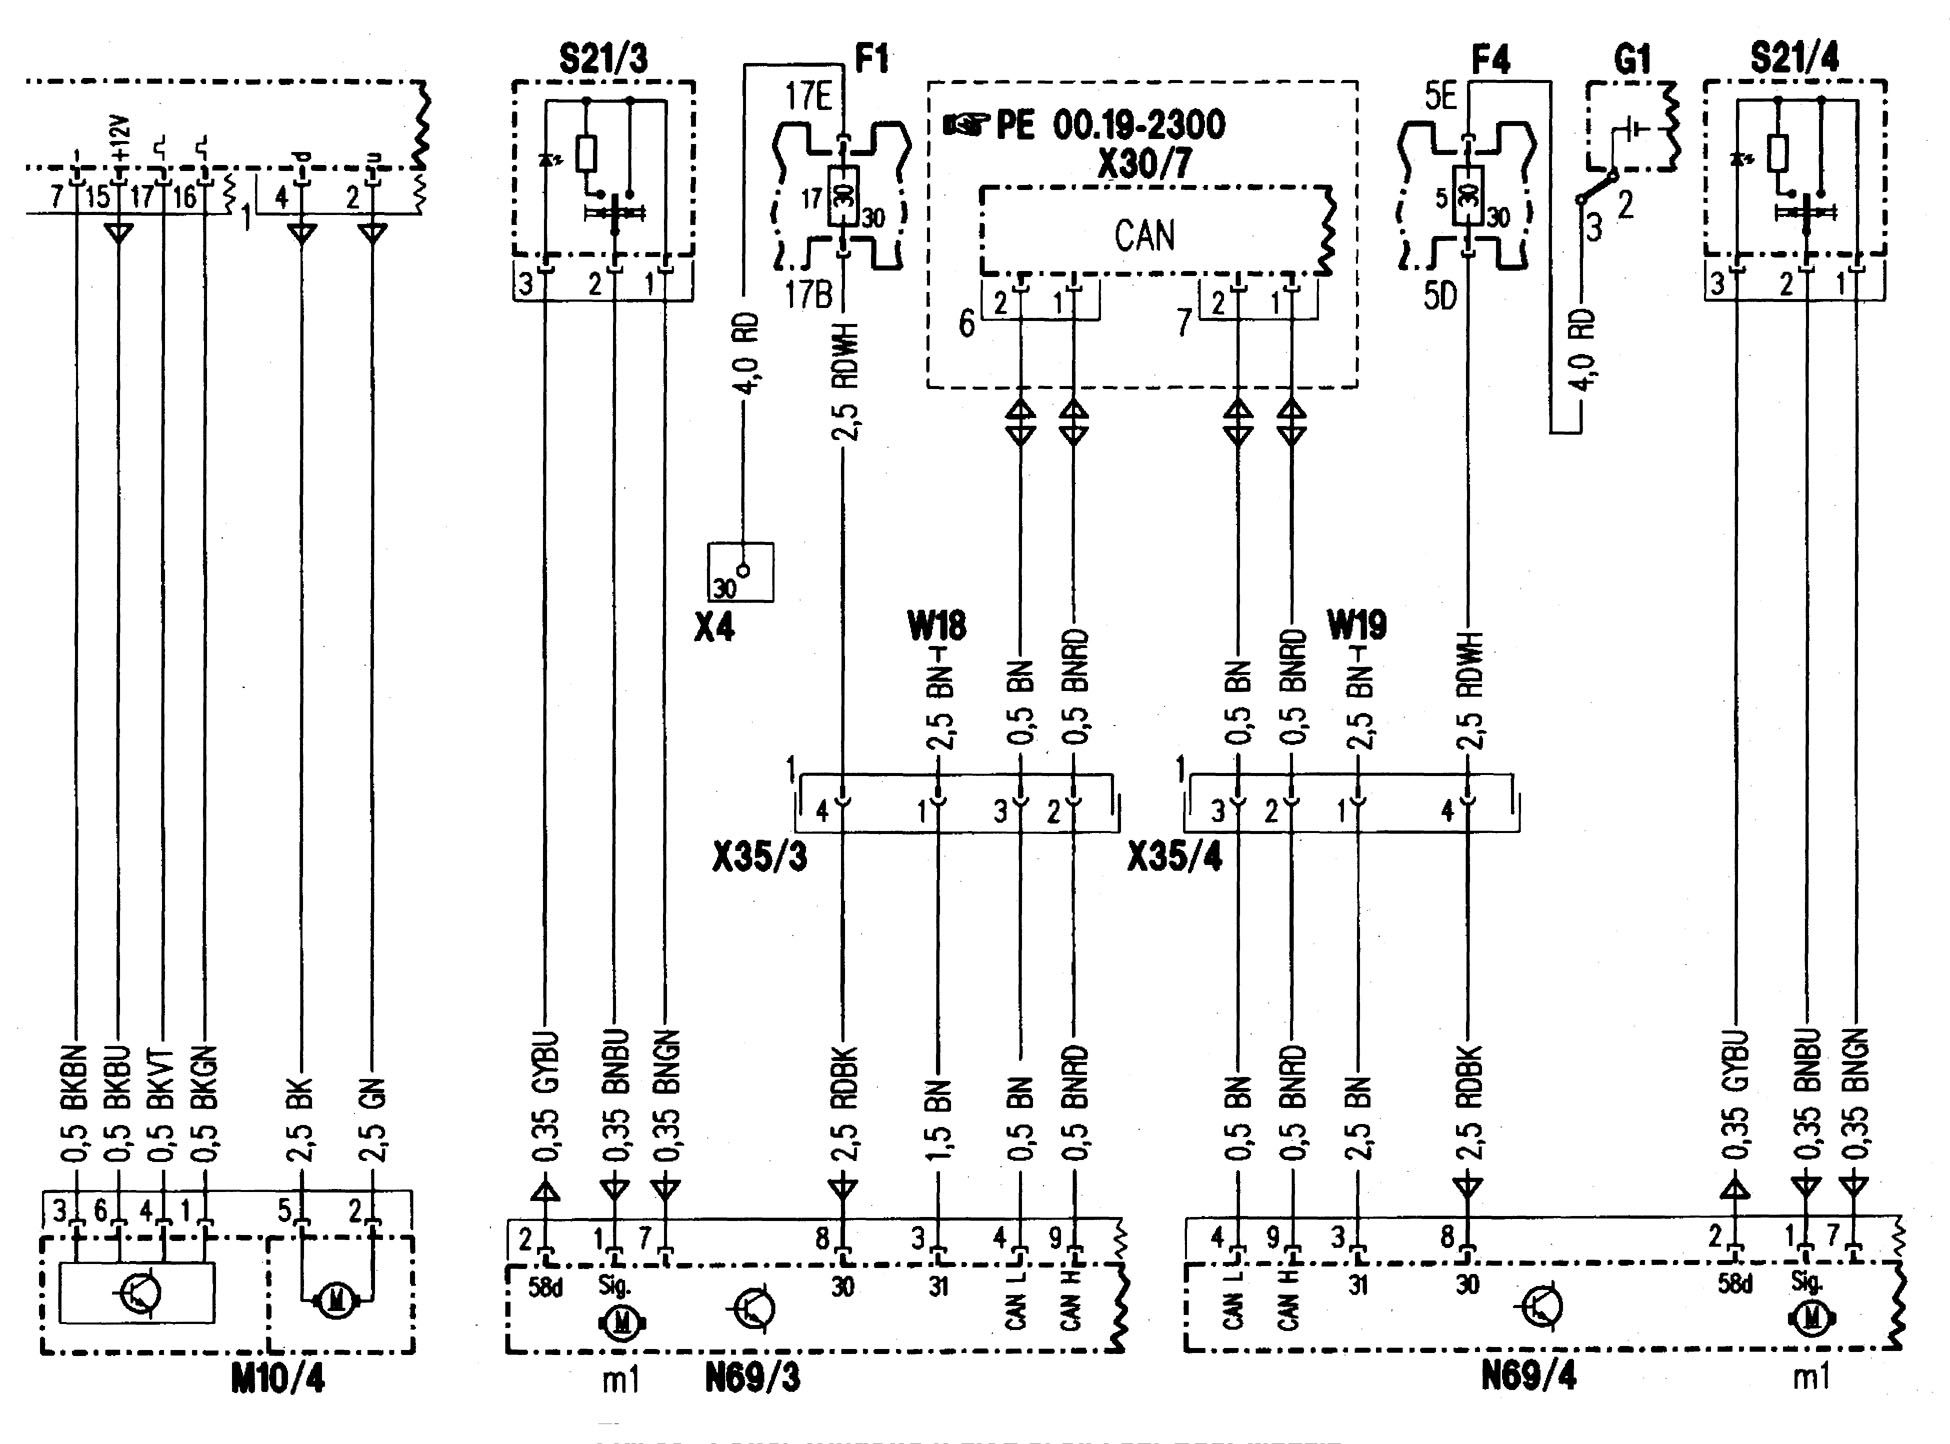 [DHAV_9290]  Mercedes-Benz C280 (1998) - wiring diagrams - power windows -  Carknowledge.info | 1999 Mercedes Benz Wiring Diagrams |  | Carknowledge.info